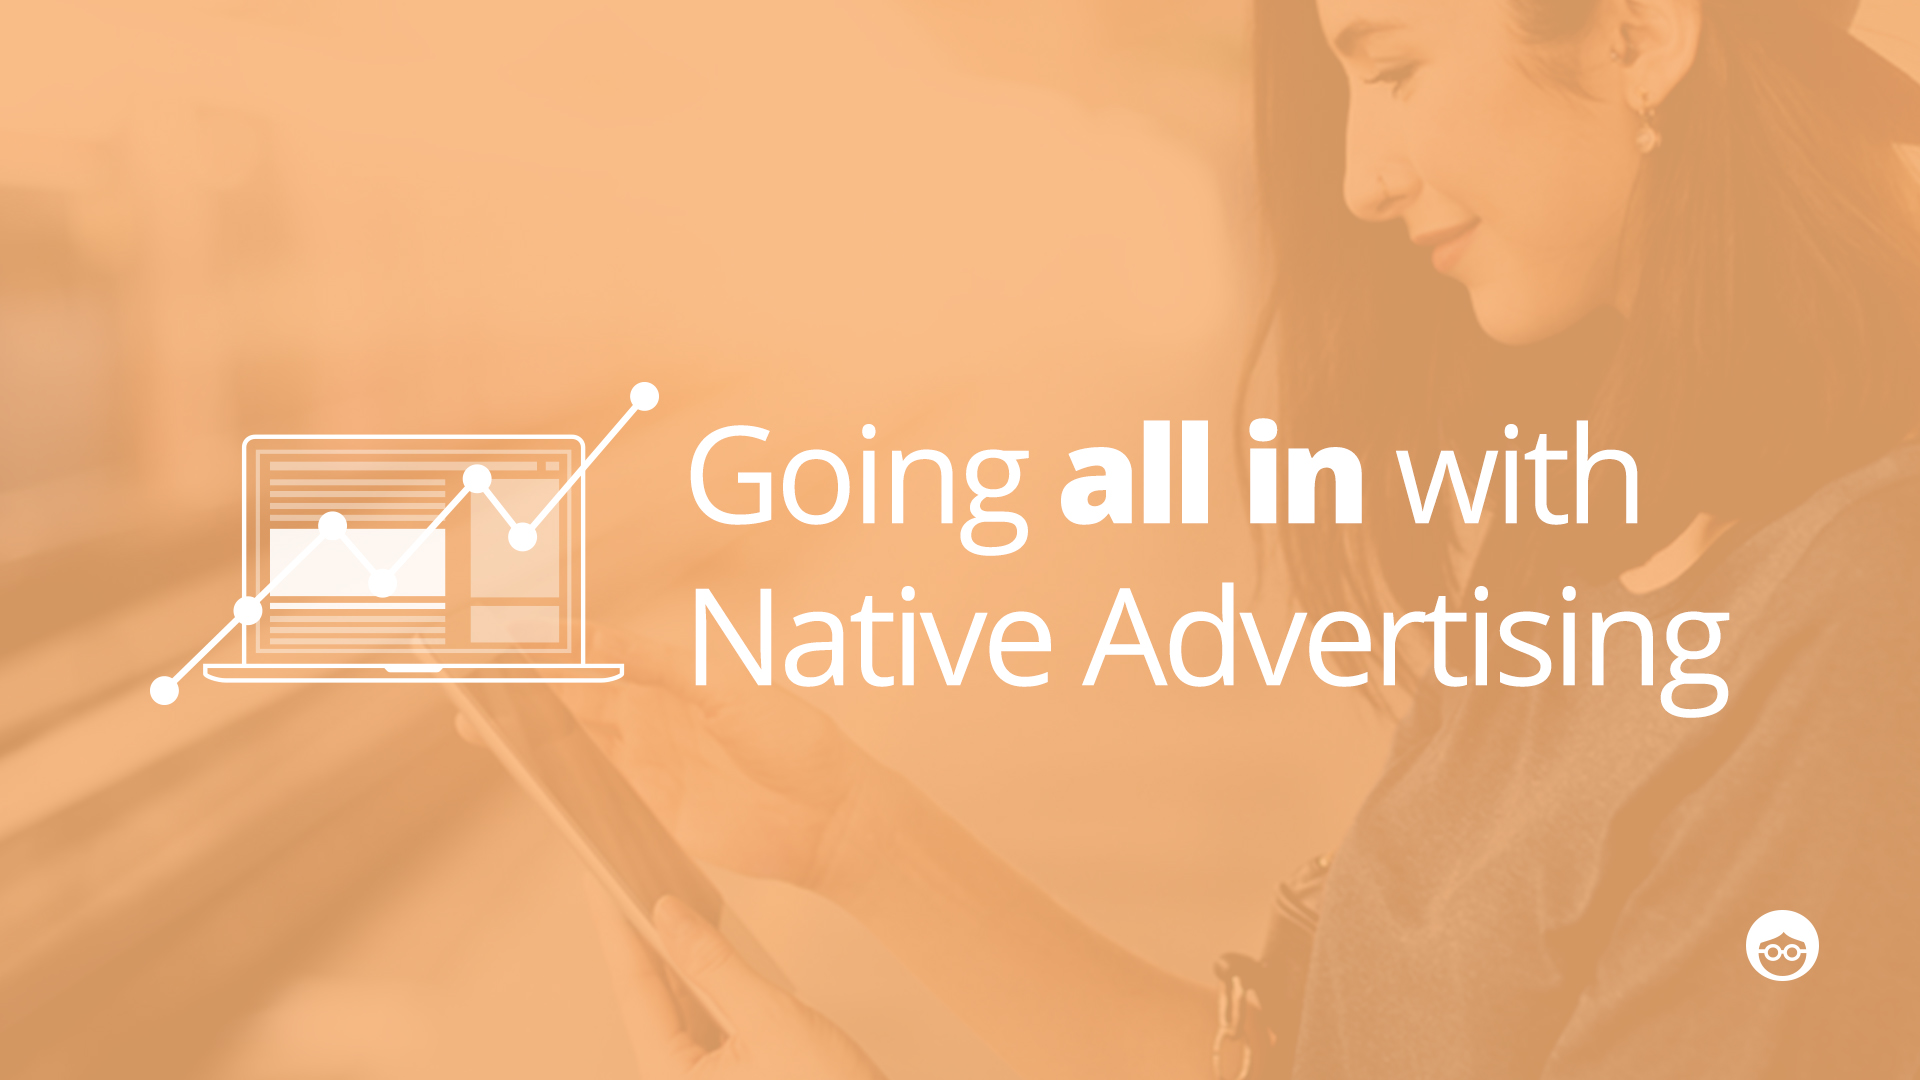 Going all in native